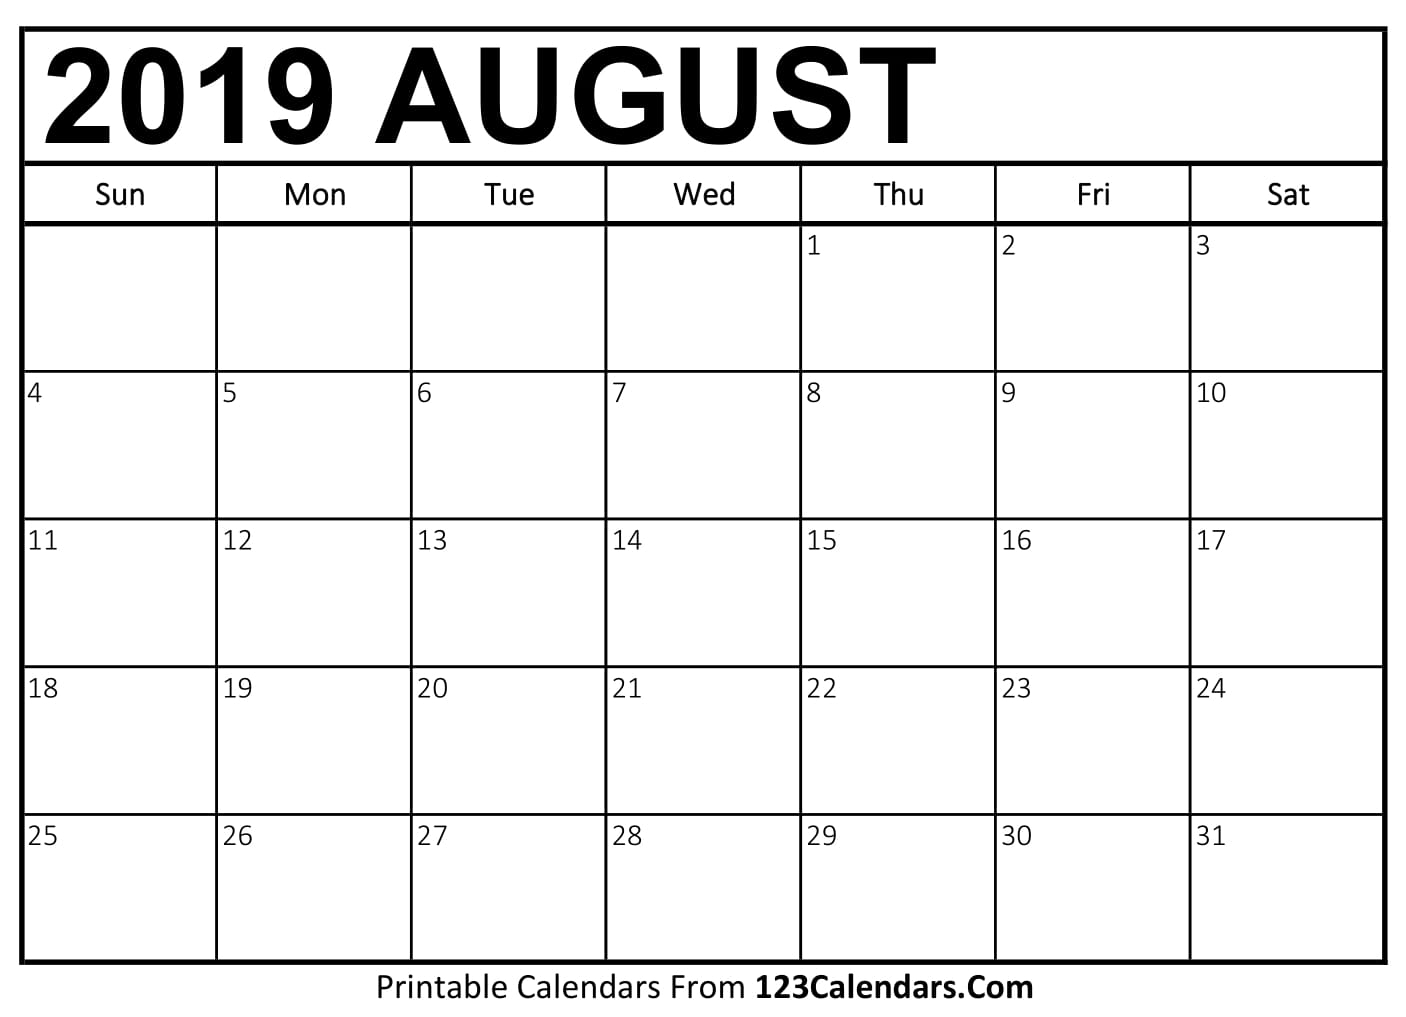 August 2019 Printable Calendar | 123Calendars regarding Blank Calendar To Write On August